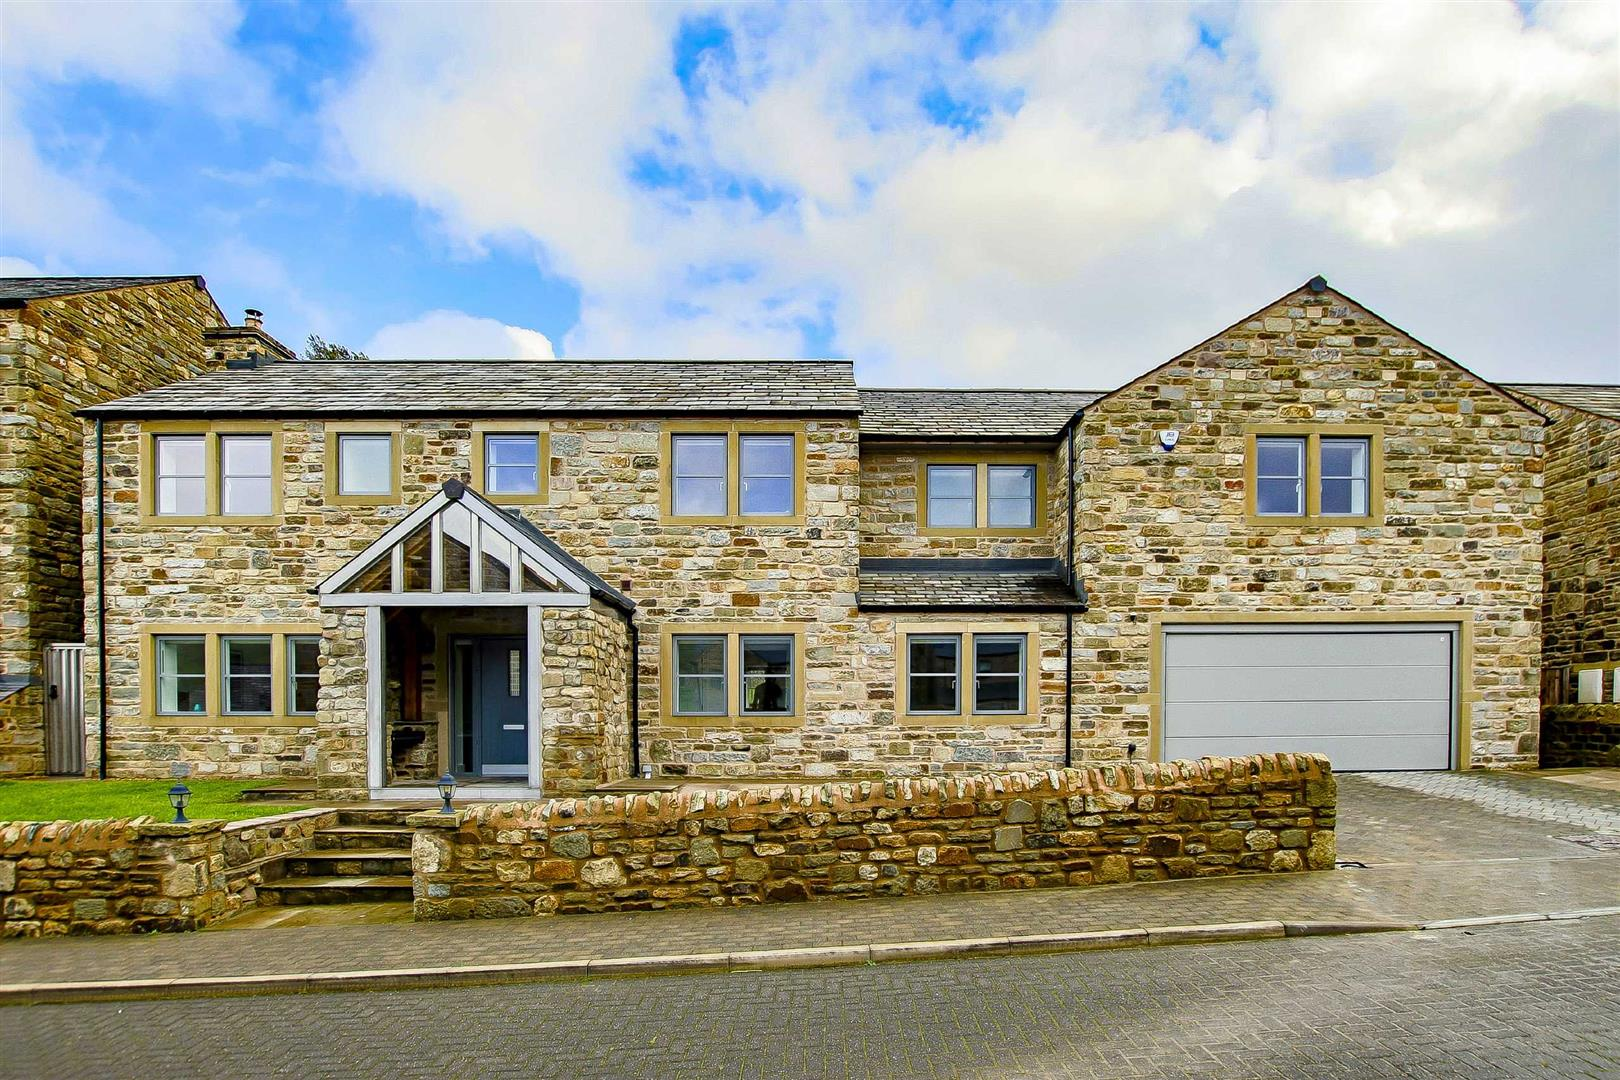 7 Bedroom Detached House For Sale - Main Image